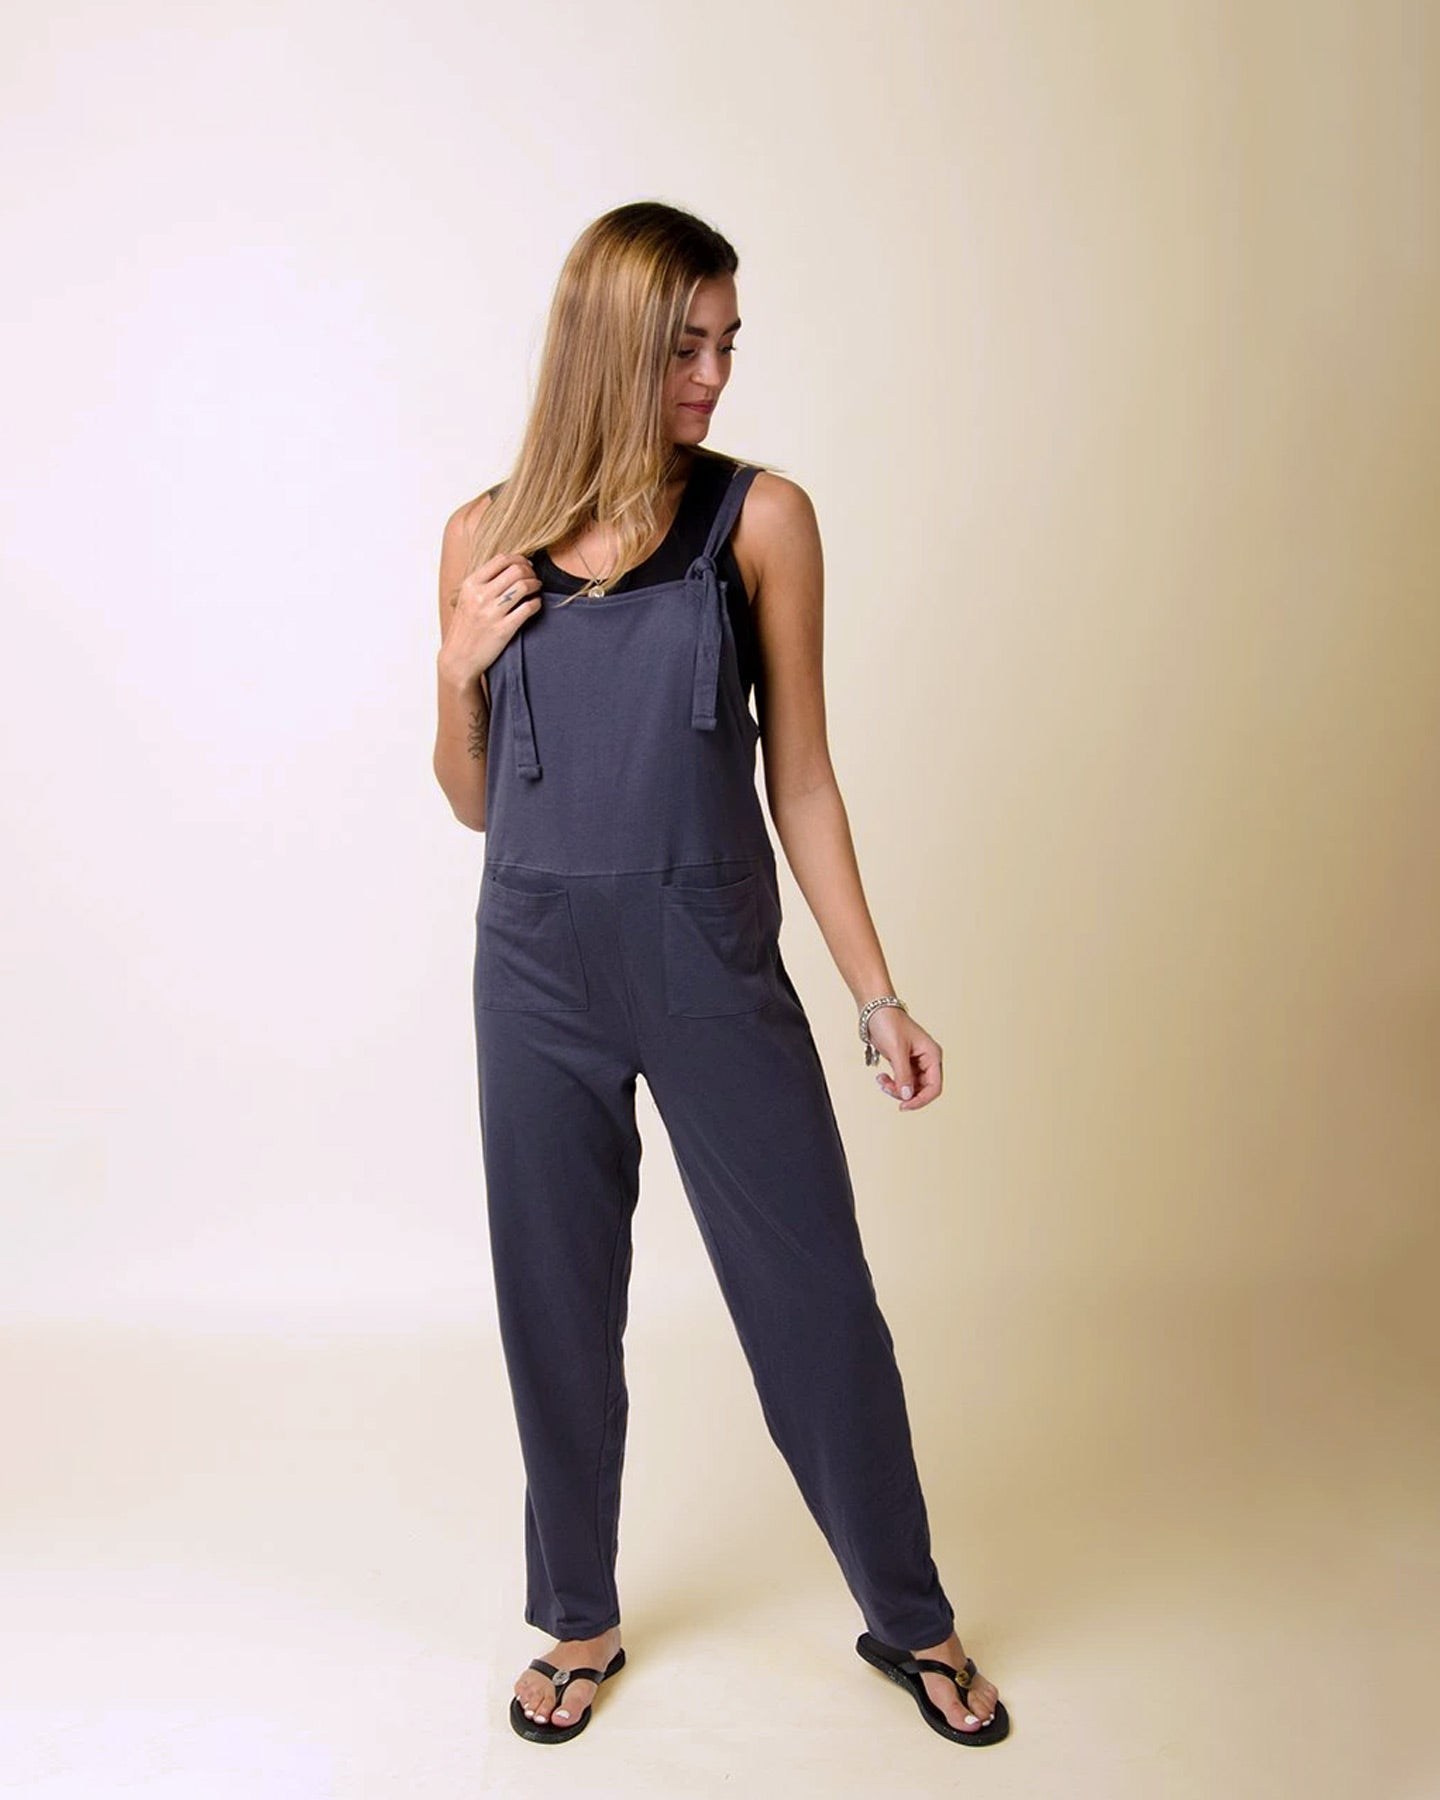 MABEL Jersey Jumpsuit in Charcoal